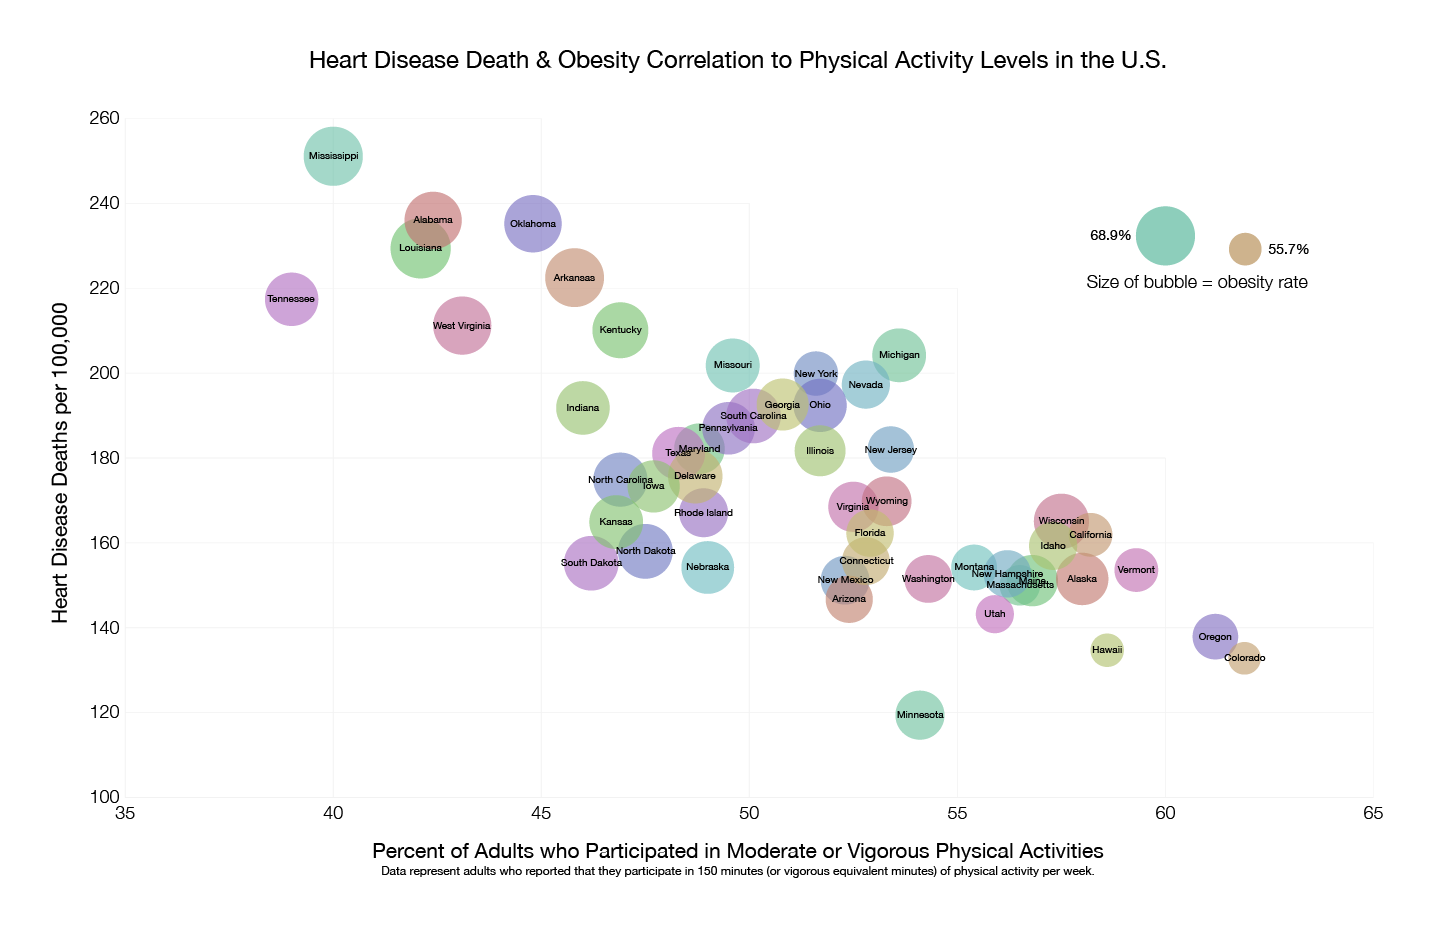 heart disease facts digital splash media activity heart disease obesity 01